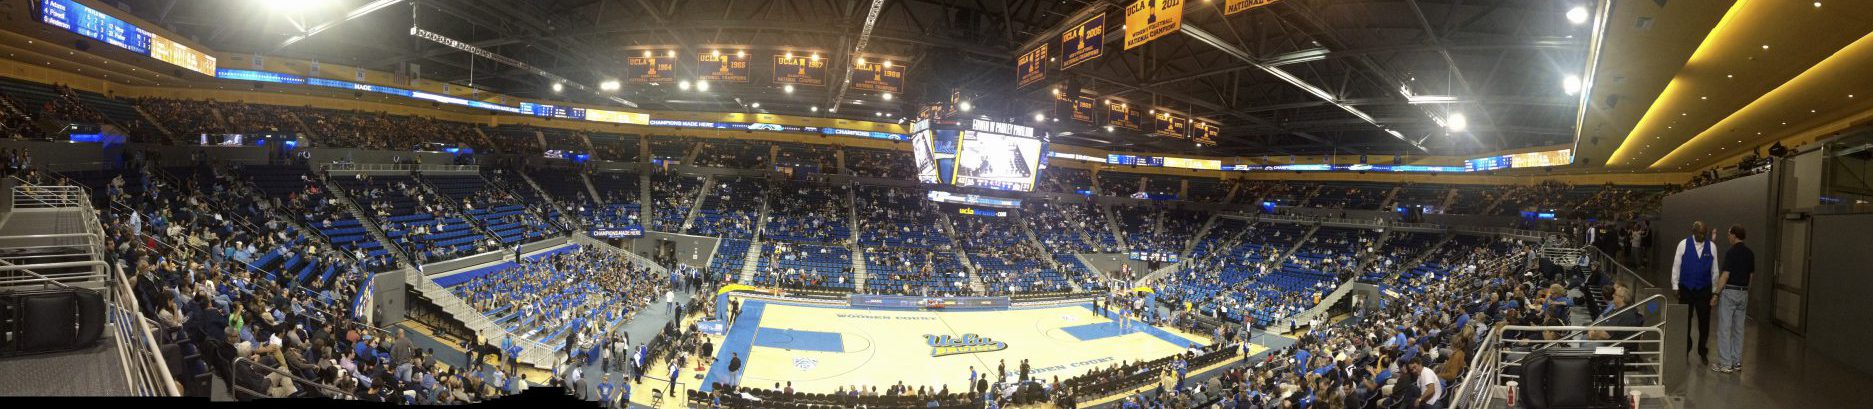 UCLA Pauley Pavilion